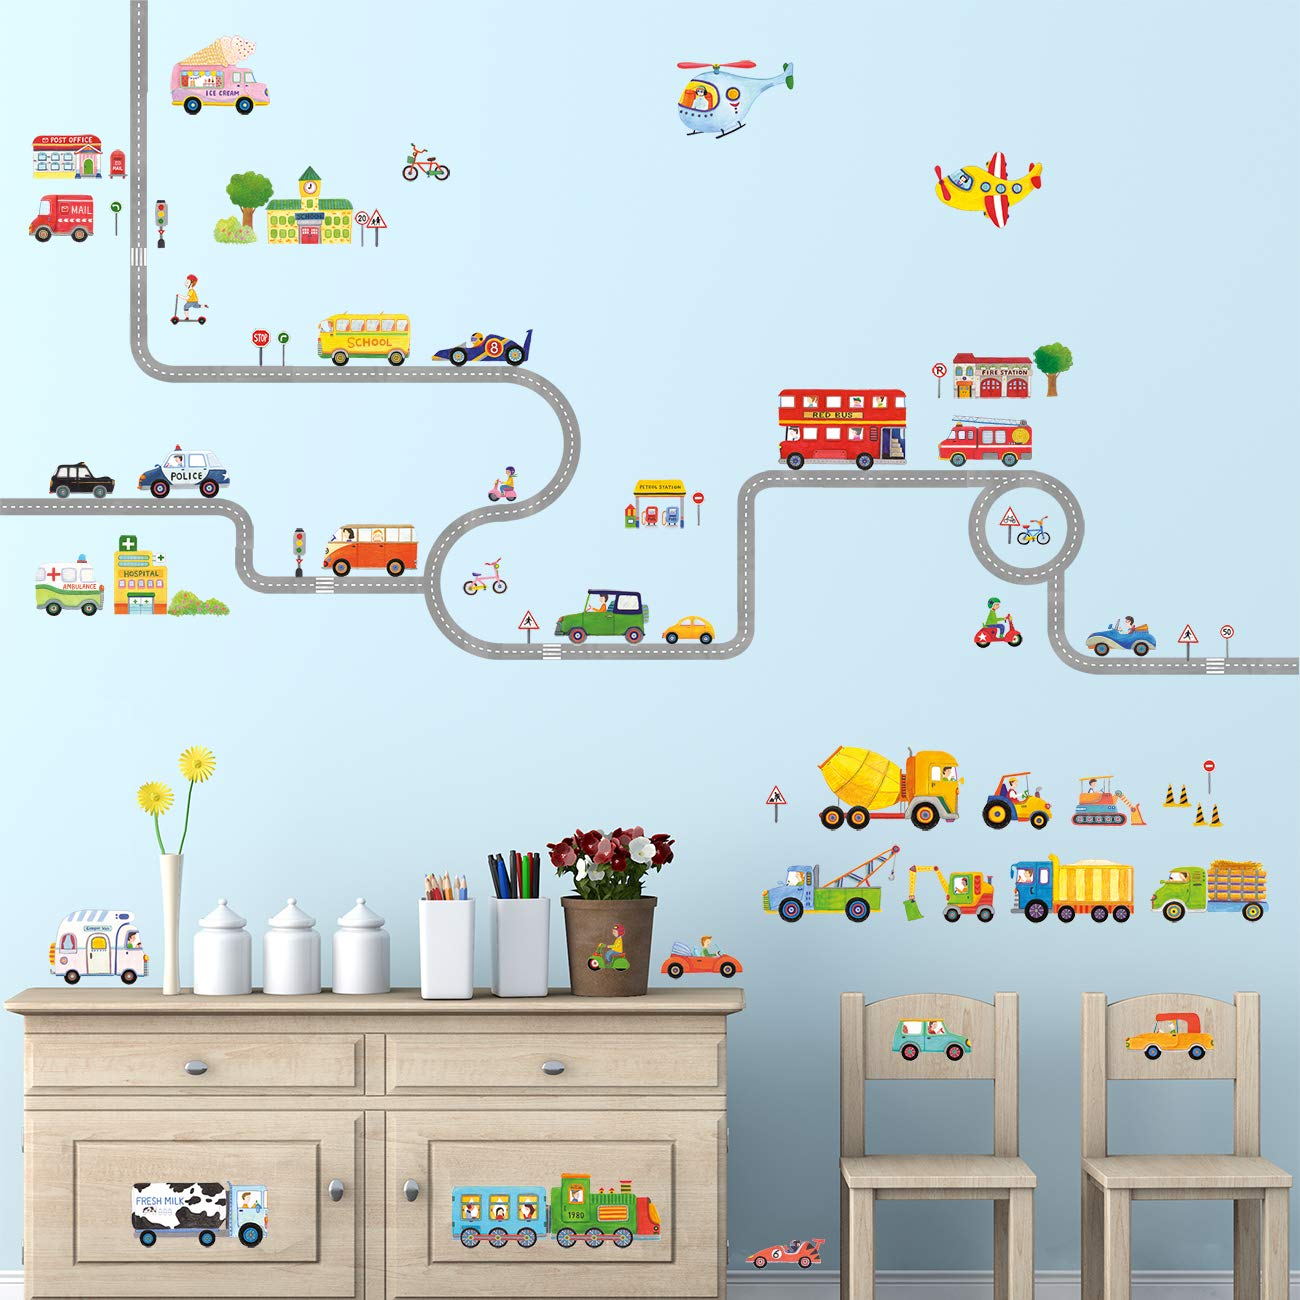 Decowall DAT-1404P1405 The Road and Transports Kids Wall Decals Wall Stickers Peel and Stick Removable Wall Stickers for Kids Nursery Bedroom Living Room by Decowall (Image #2)